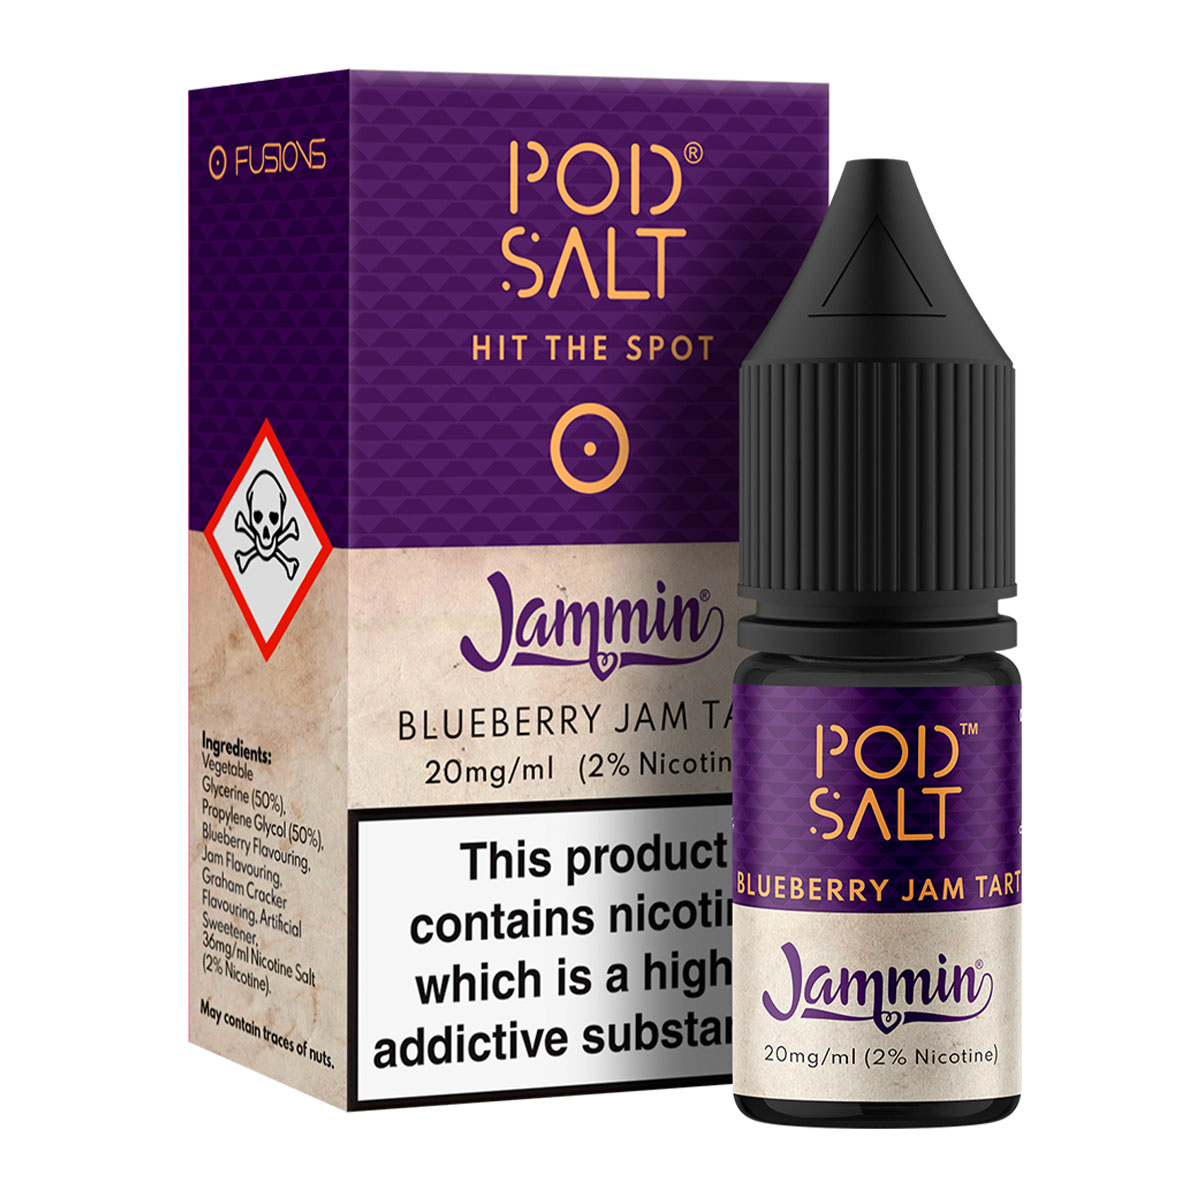 BLUEBERRY JAM TART - JAMMIN BY POD SALT FUSIONS